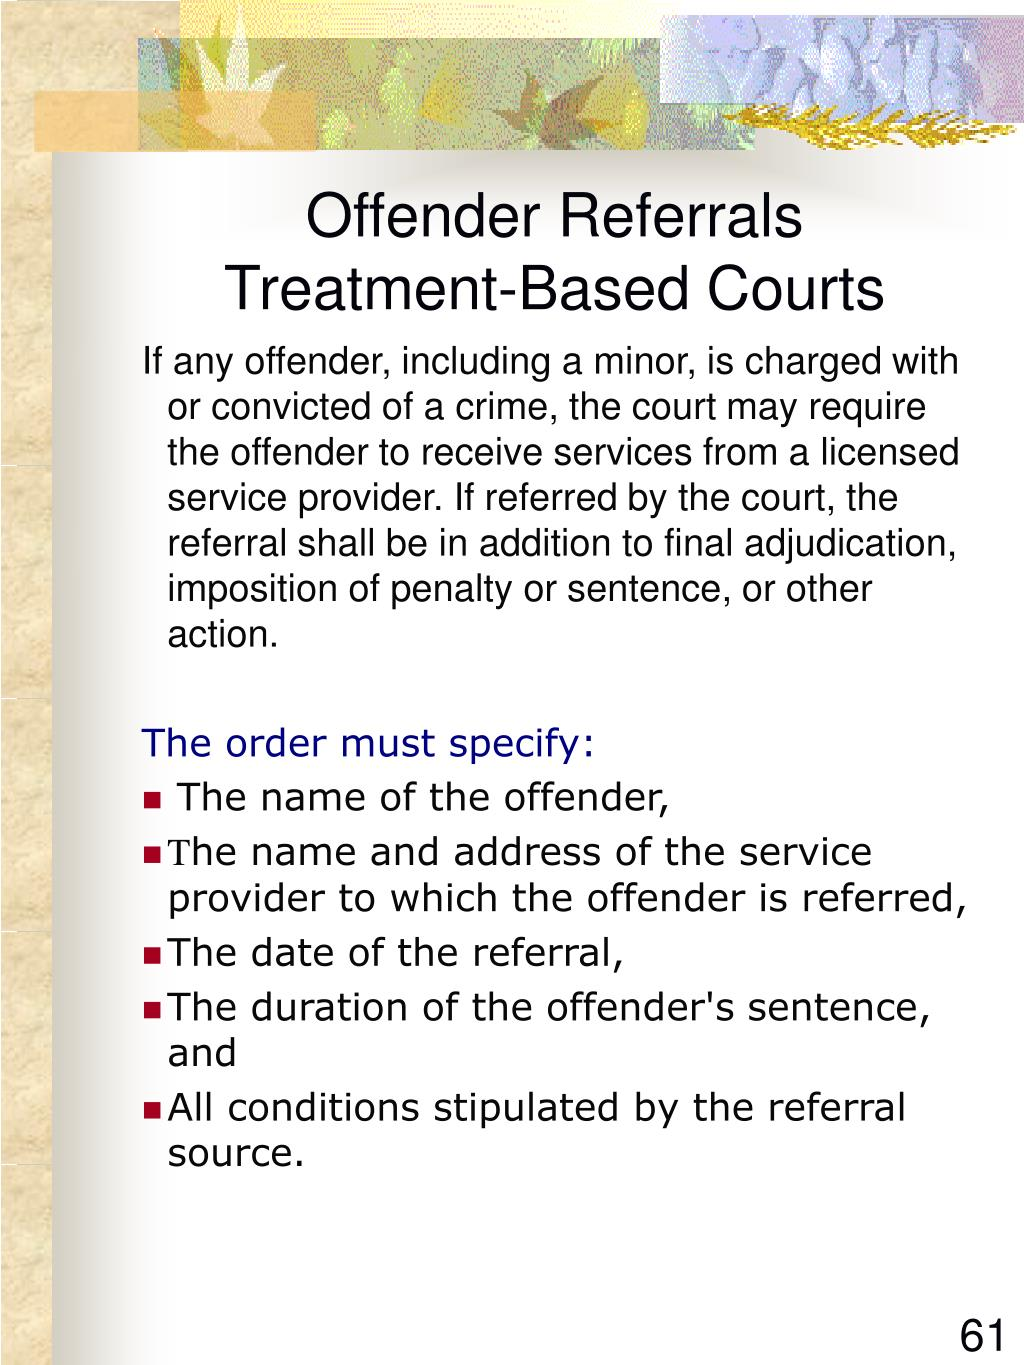 Offender Referrals